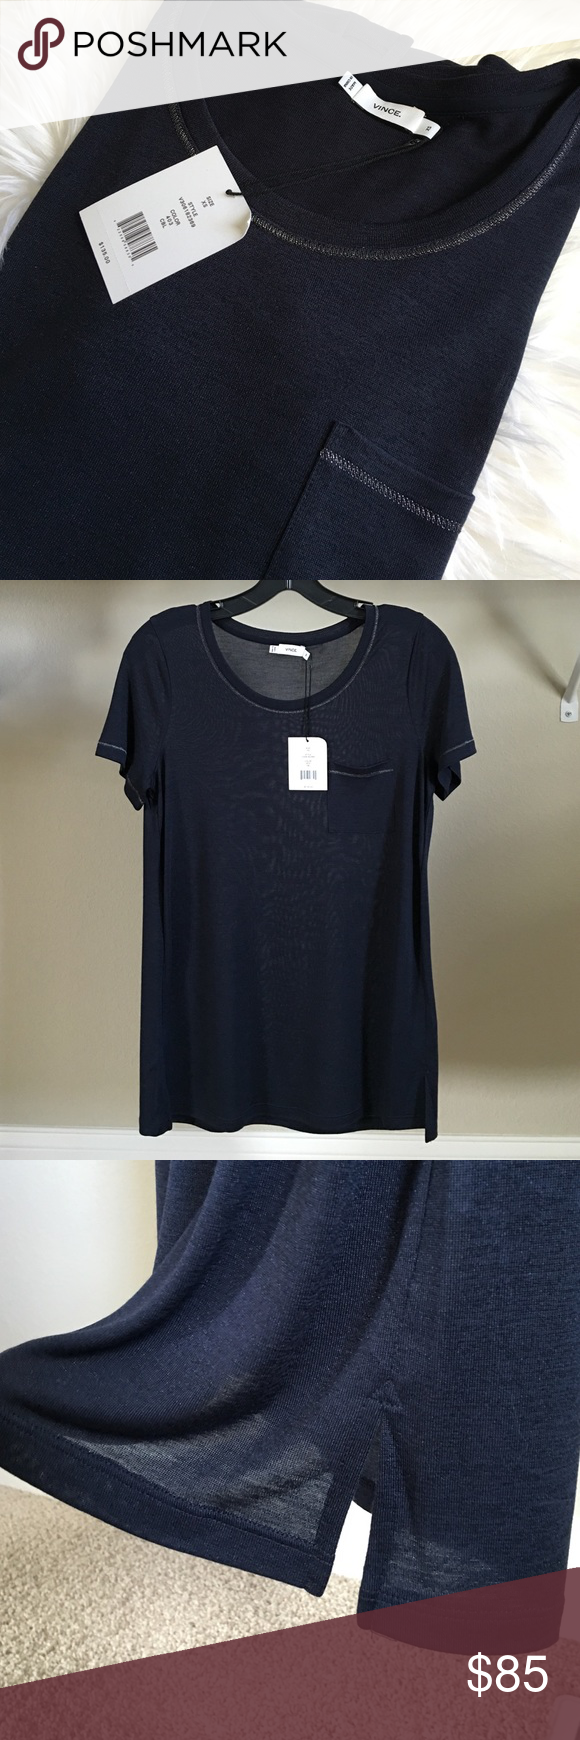 Vince navy blue tee shirt Soft comfy knit tee shirt in navy blue with silver threads top stitches on neckline, sleeves and pocket. Current style, brand me with tag. Vince Tops Tees - Short Sleeve